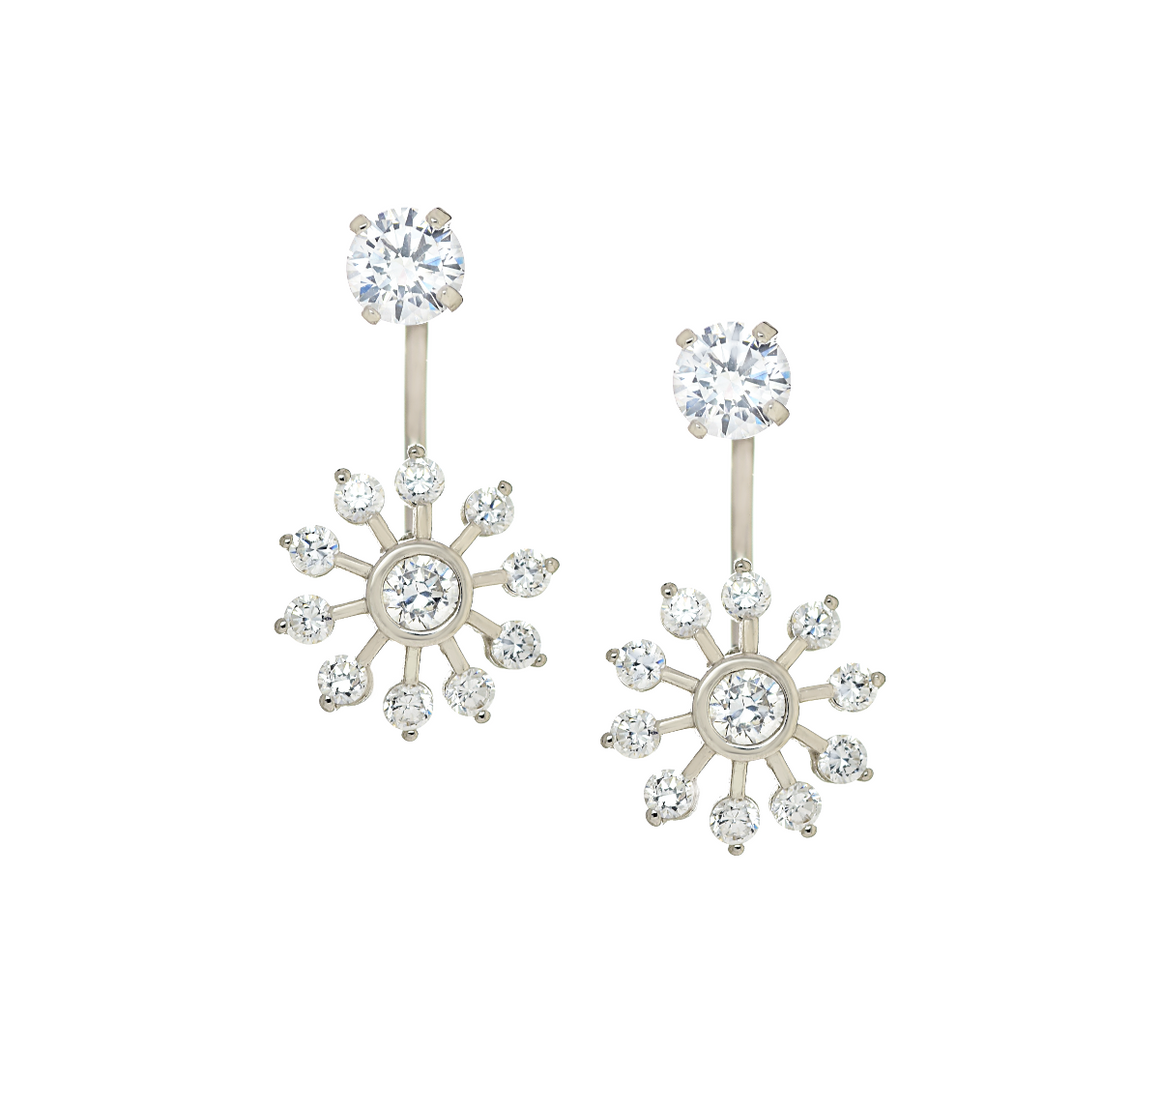 14K White Gold CZ Sun Telephone Earrings - Anny Gabriella NY